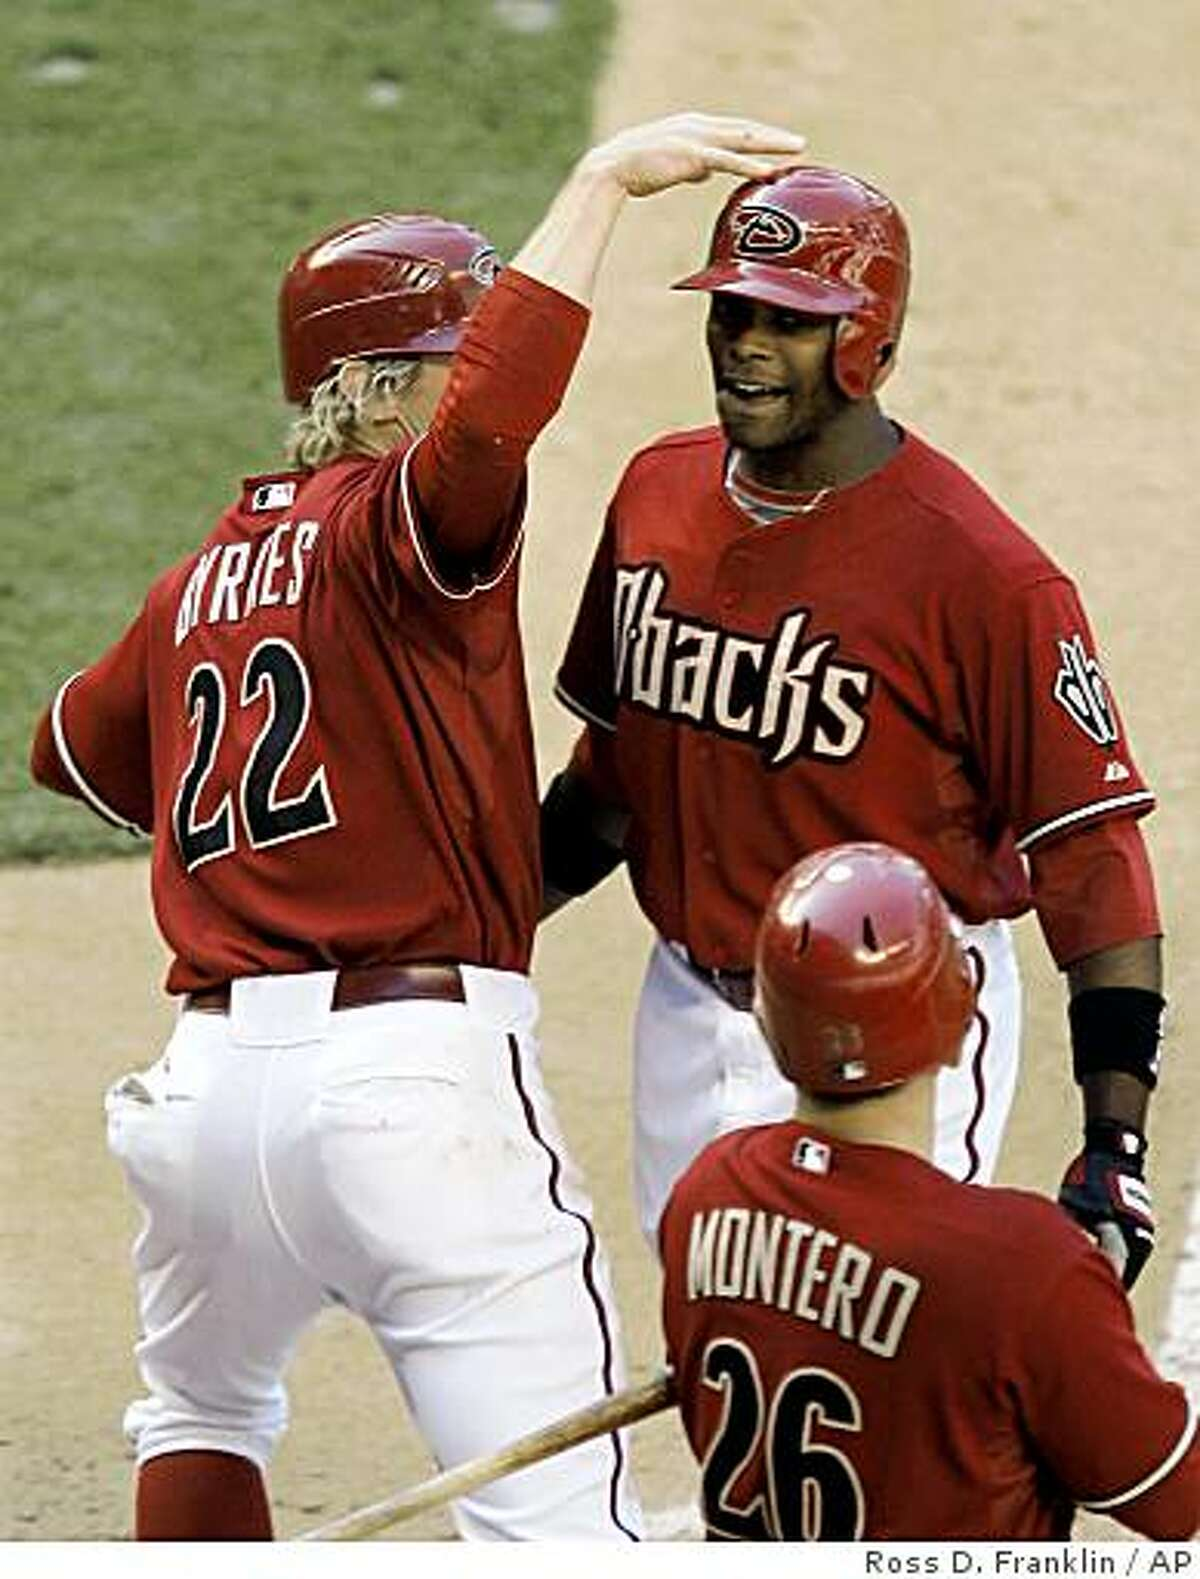 Arizona Diamondbacks' Justin Upton, top right, celebrates his game-tying home run with teammates Eric Byrnes (22) and Miguel Montero (26), of Venezuela, in the ninth inning of a baseball game against the San Francisco Giants Sunday, April 26, 2009, in Phoenix. (AP Photo/Ross D. Franklin)